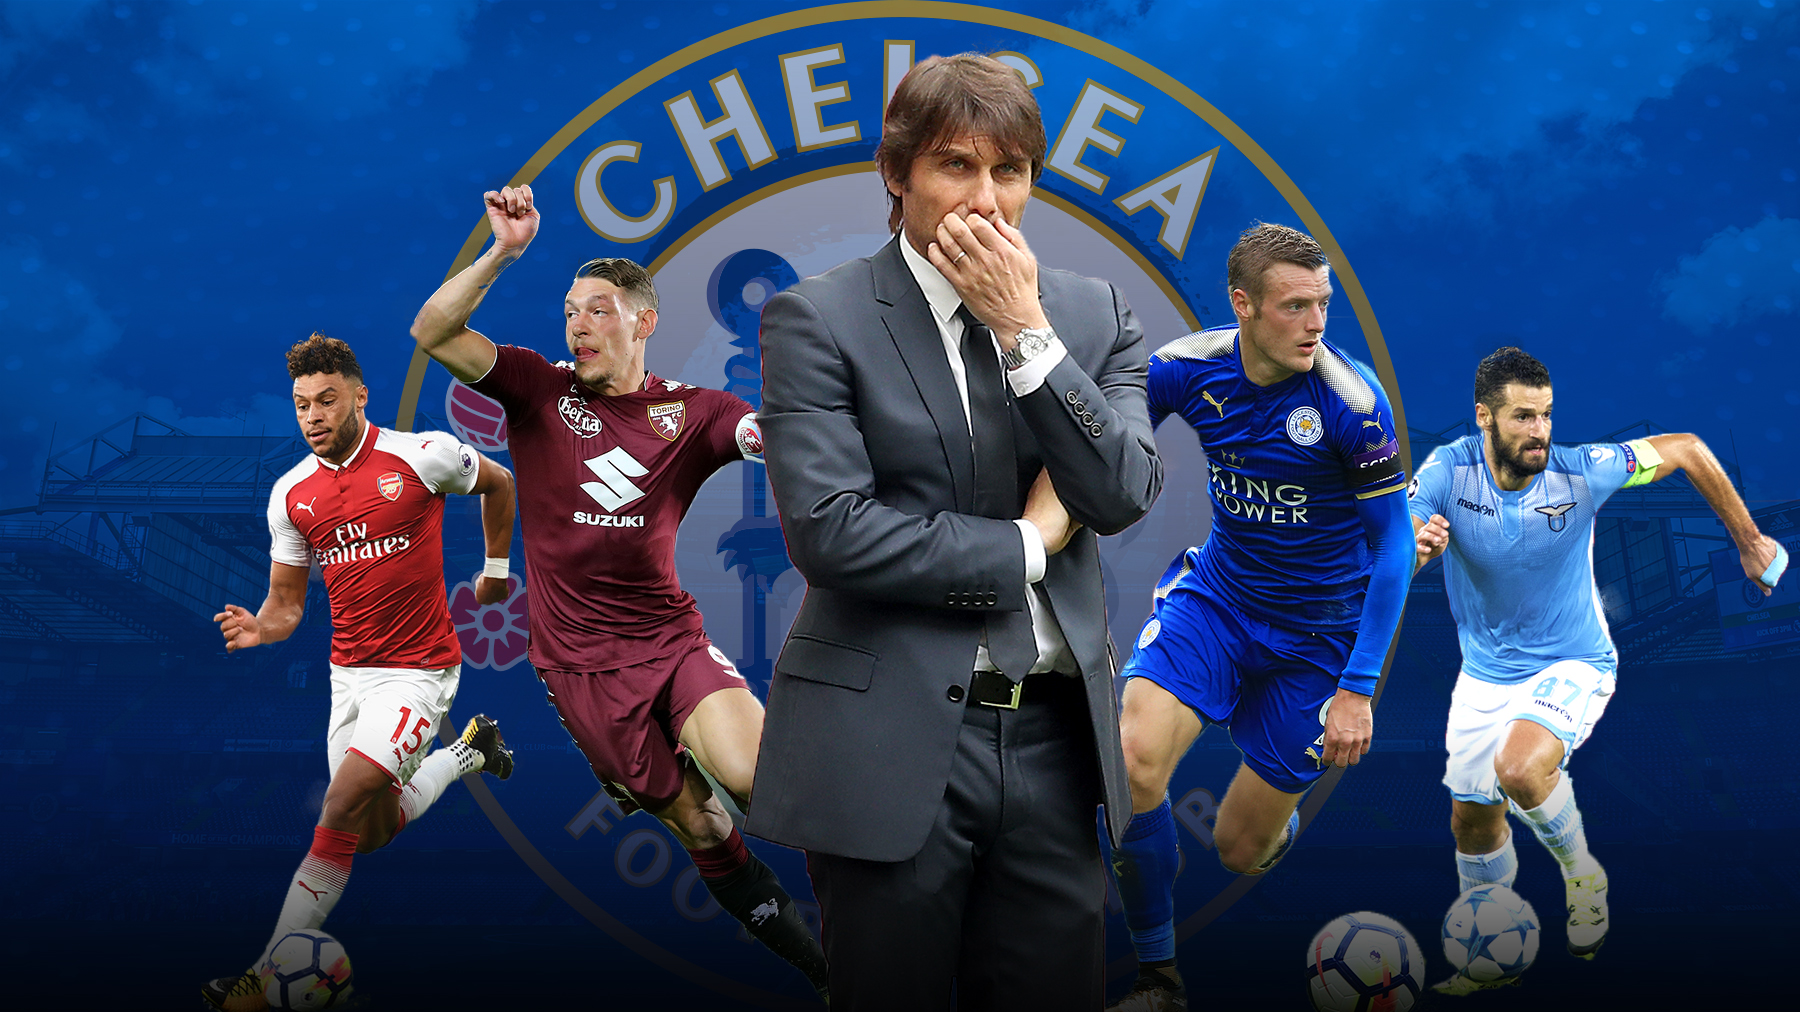 Chelsea's transfer targets – including Vardy, Belotti, Ox and Candreva – and the likelihood of a deal